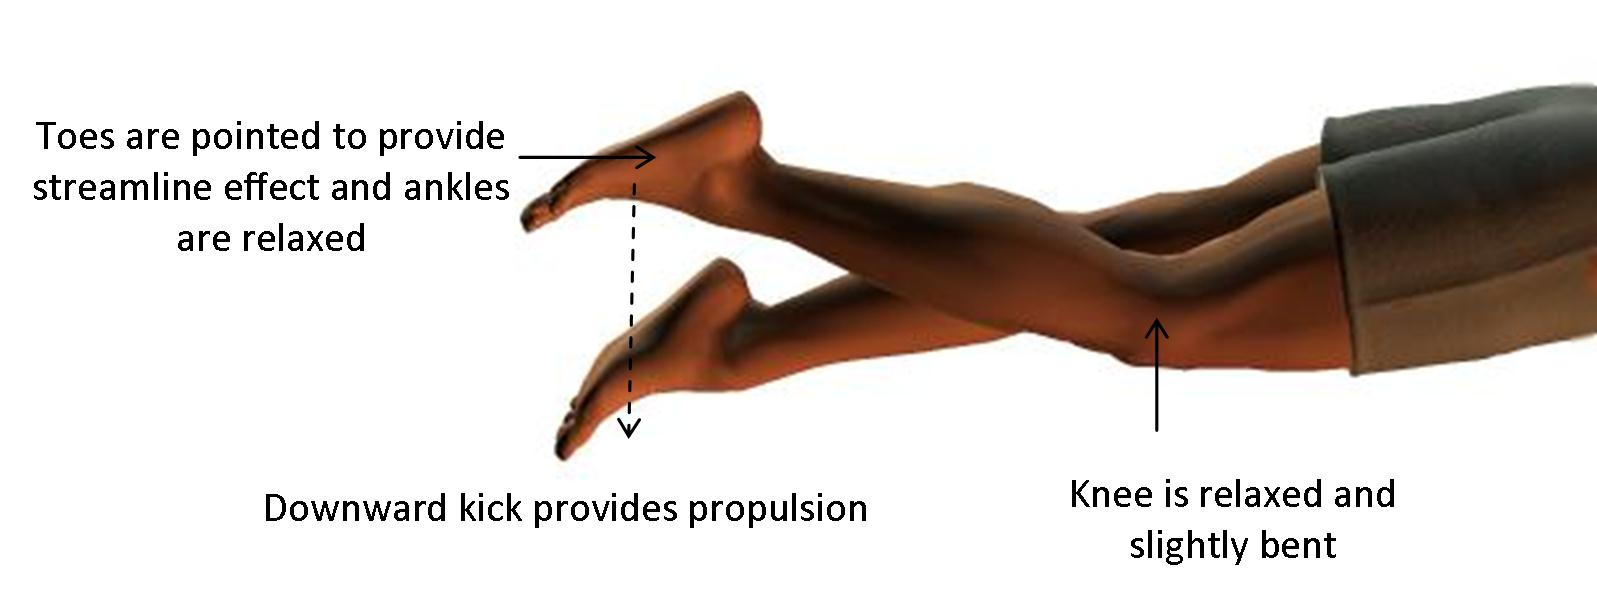 Downward front crawl leg kick gives propulsion as knee is relaxed and slightly bent